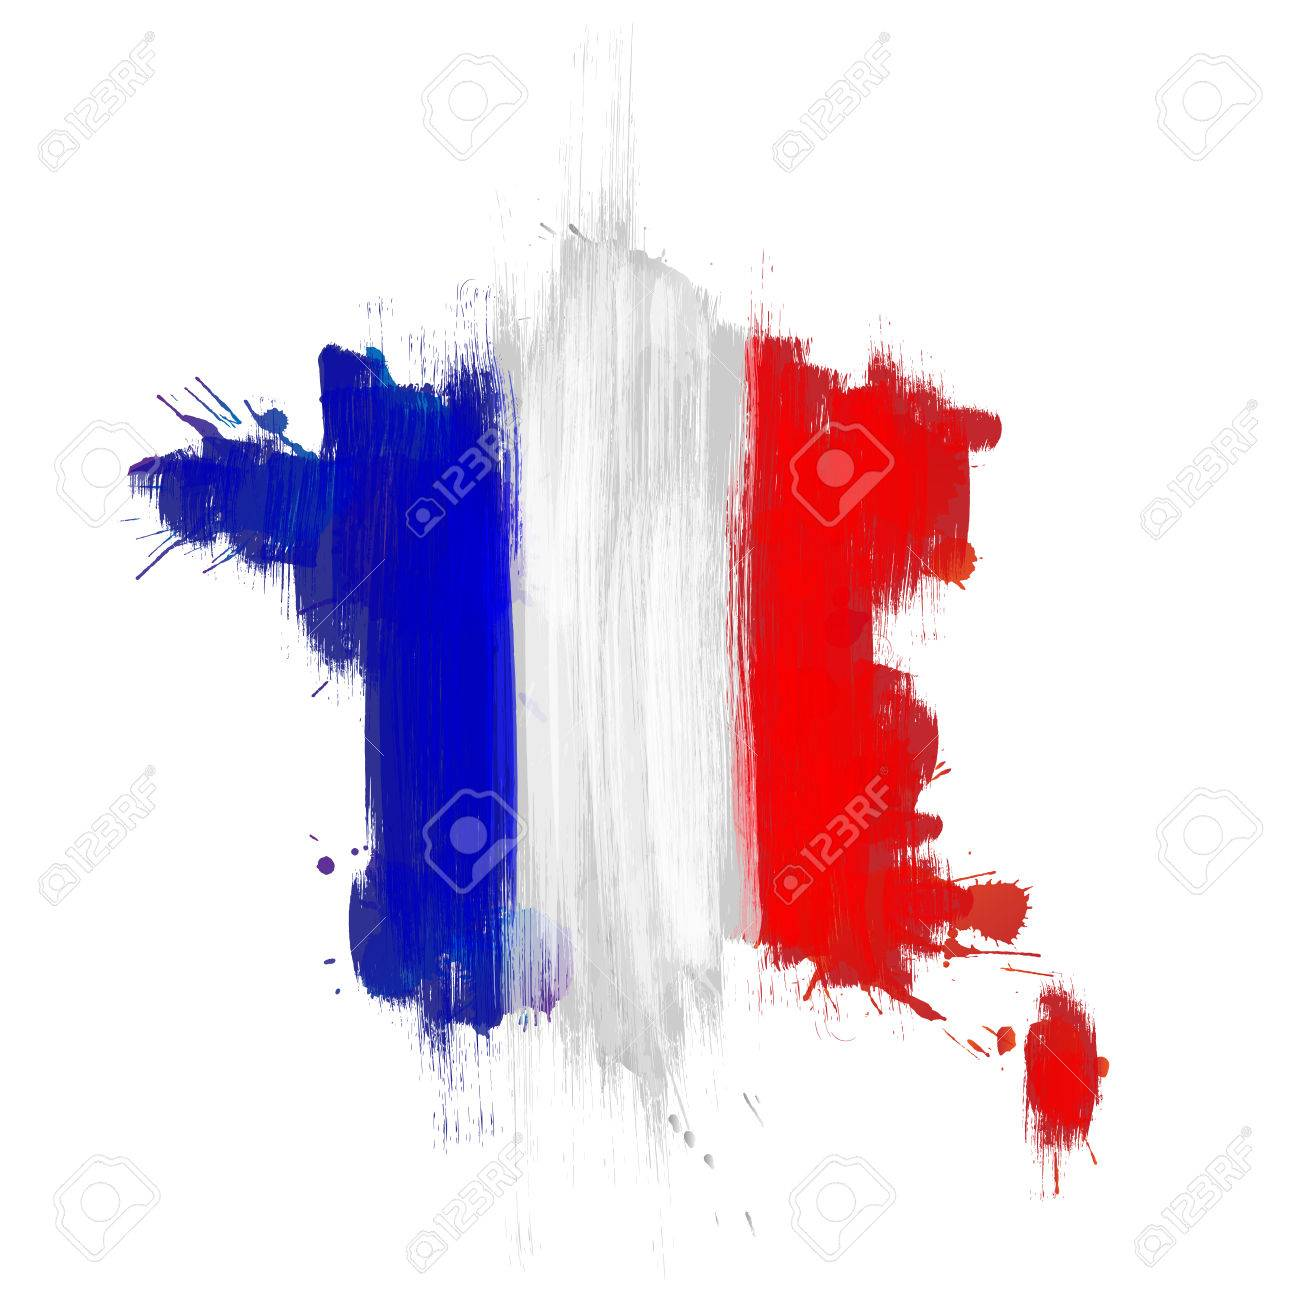 Grunge map of France with French flag - 53066133